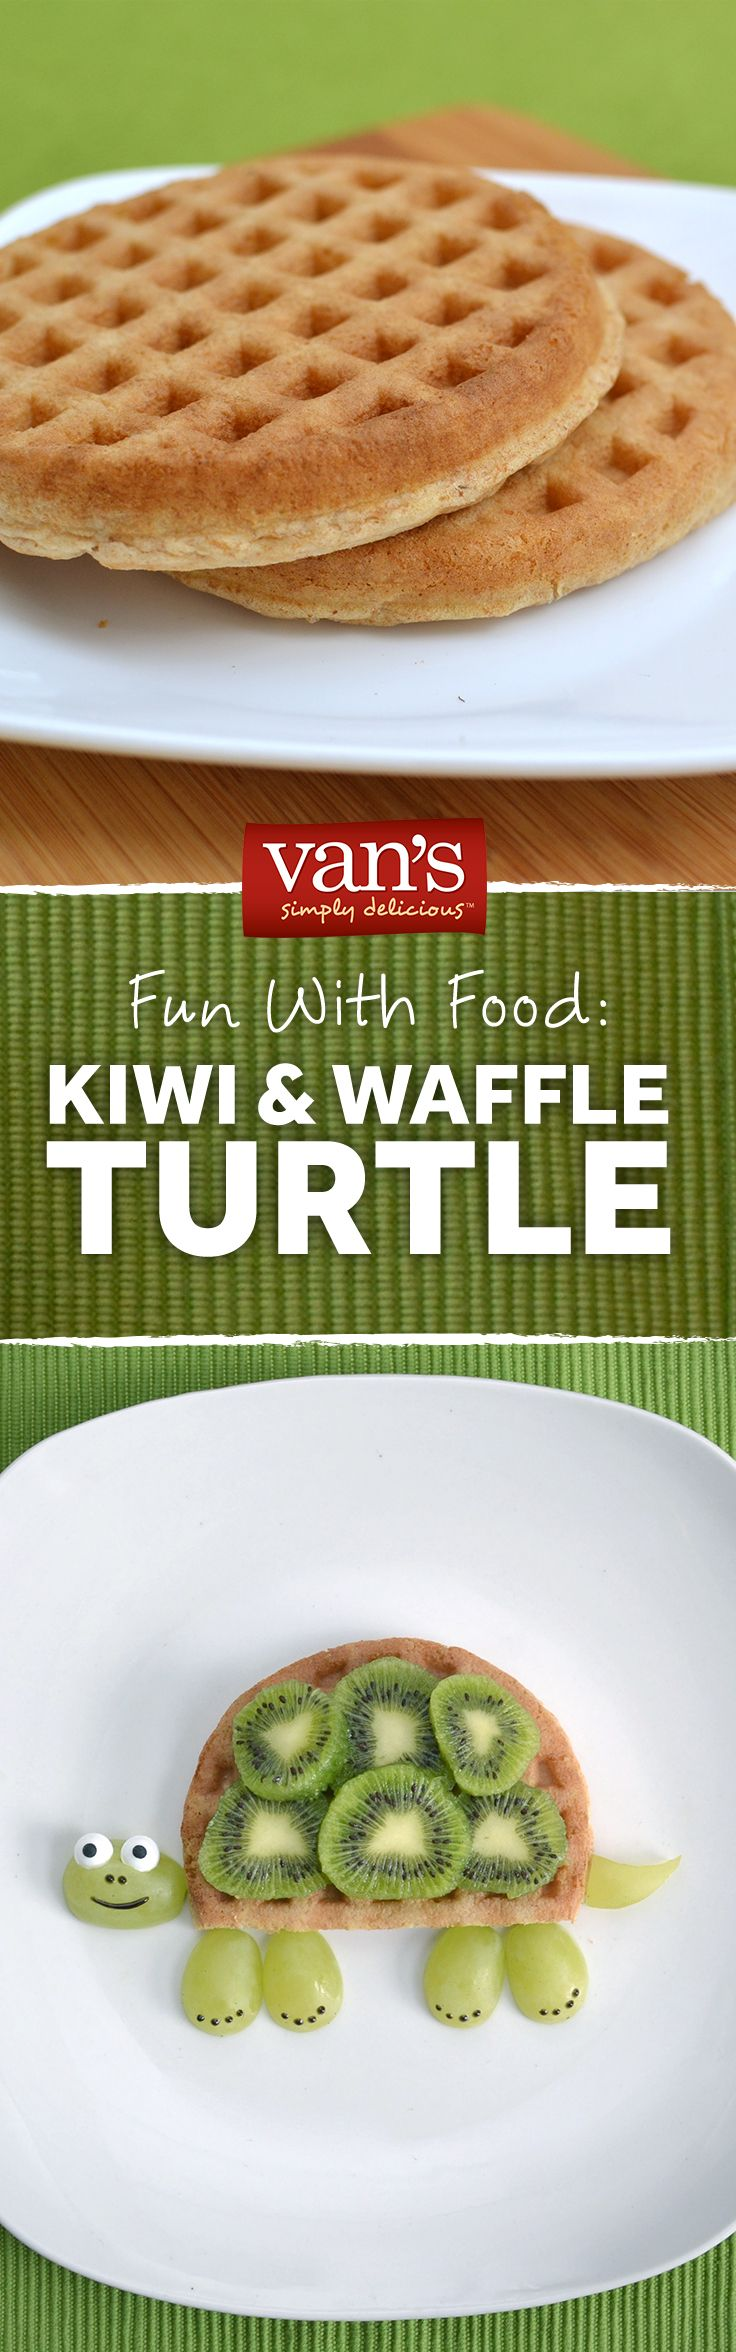 Bet the kiddos won't be slow to the table for this playful breakfast idea! Slice up some kiwis and add some grapes to your waffles to make this cute turtle idea!